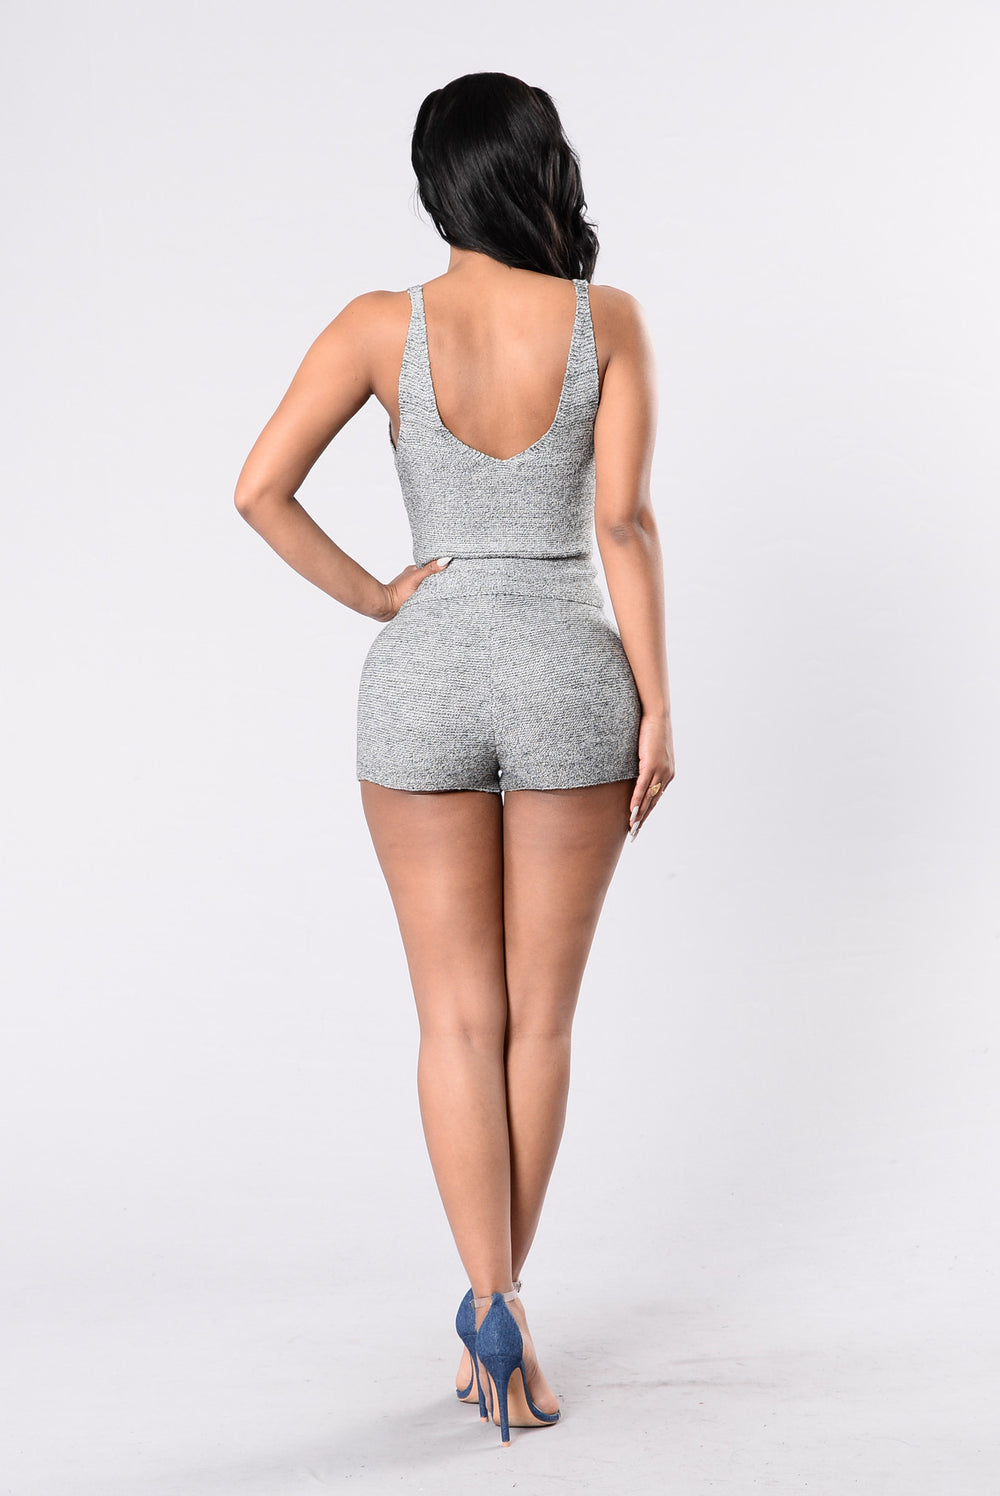 Spin City Top - Charcoal